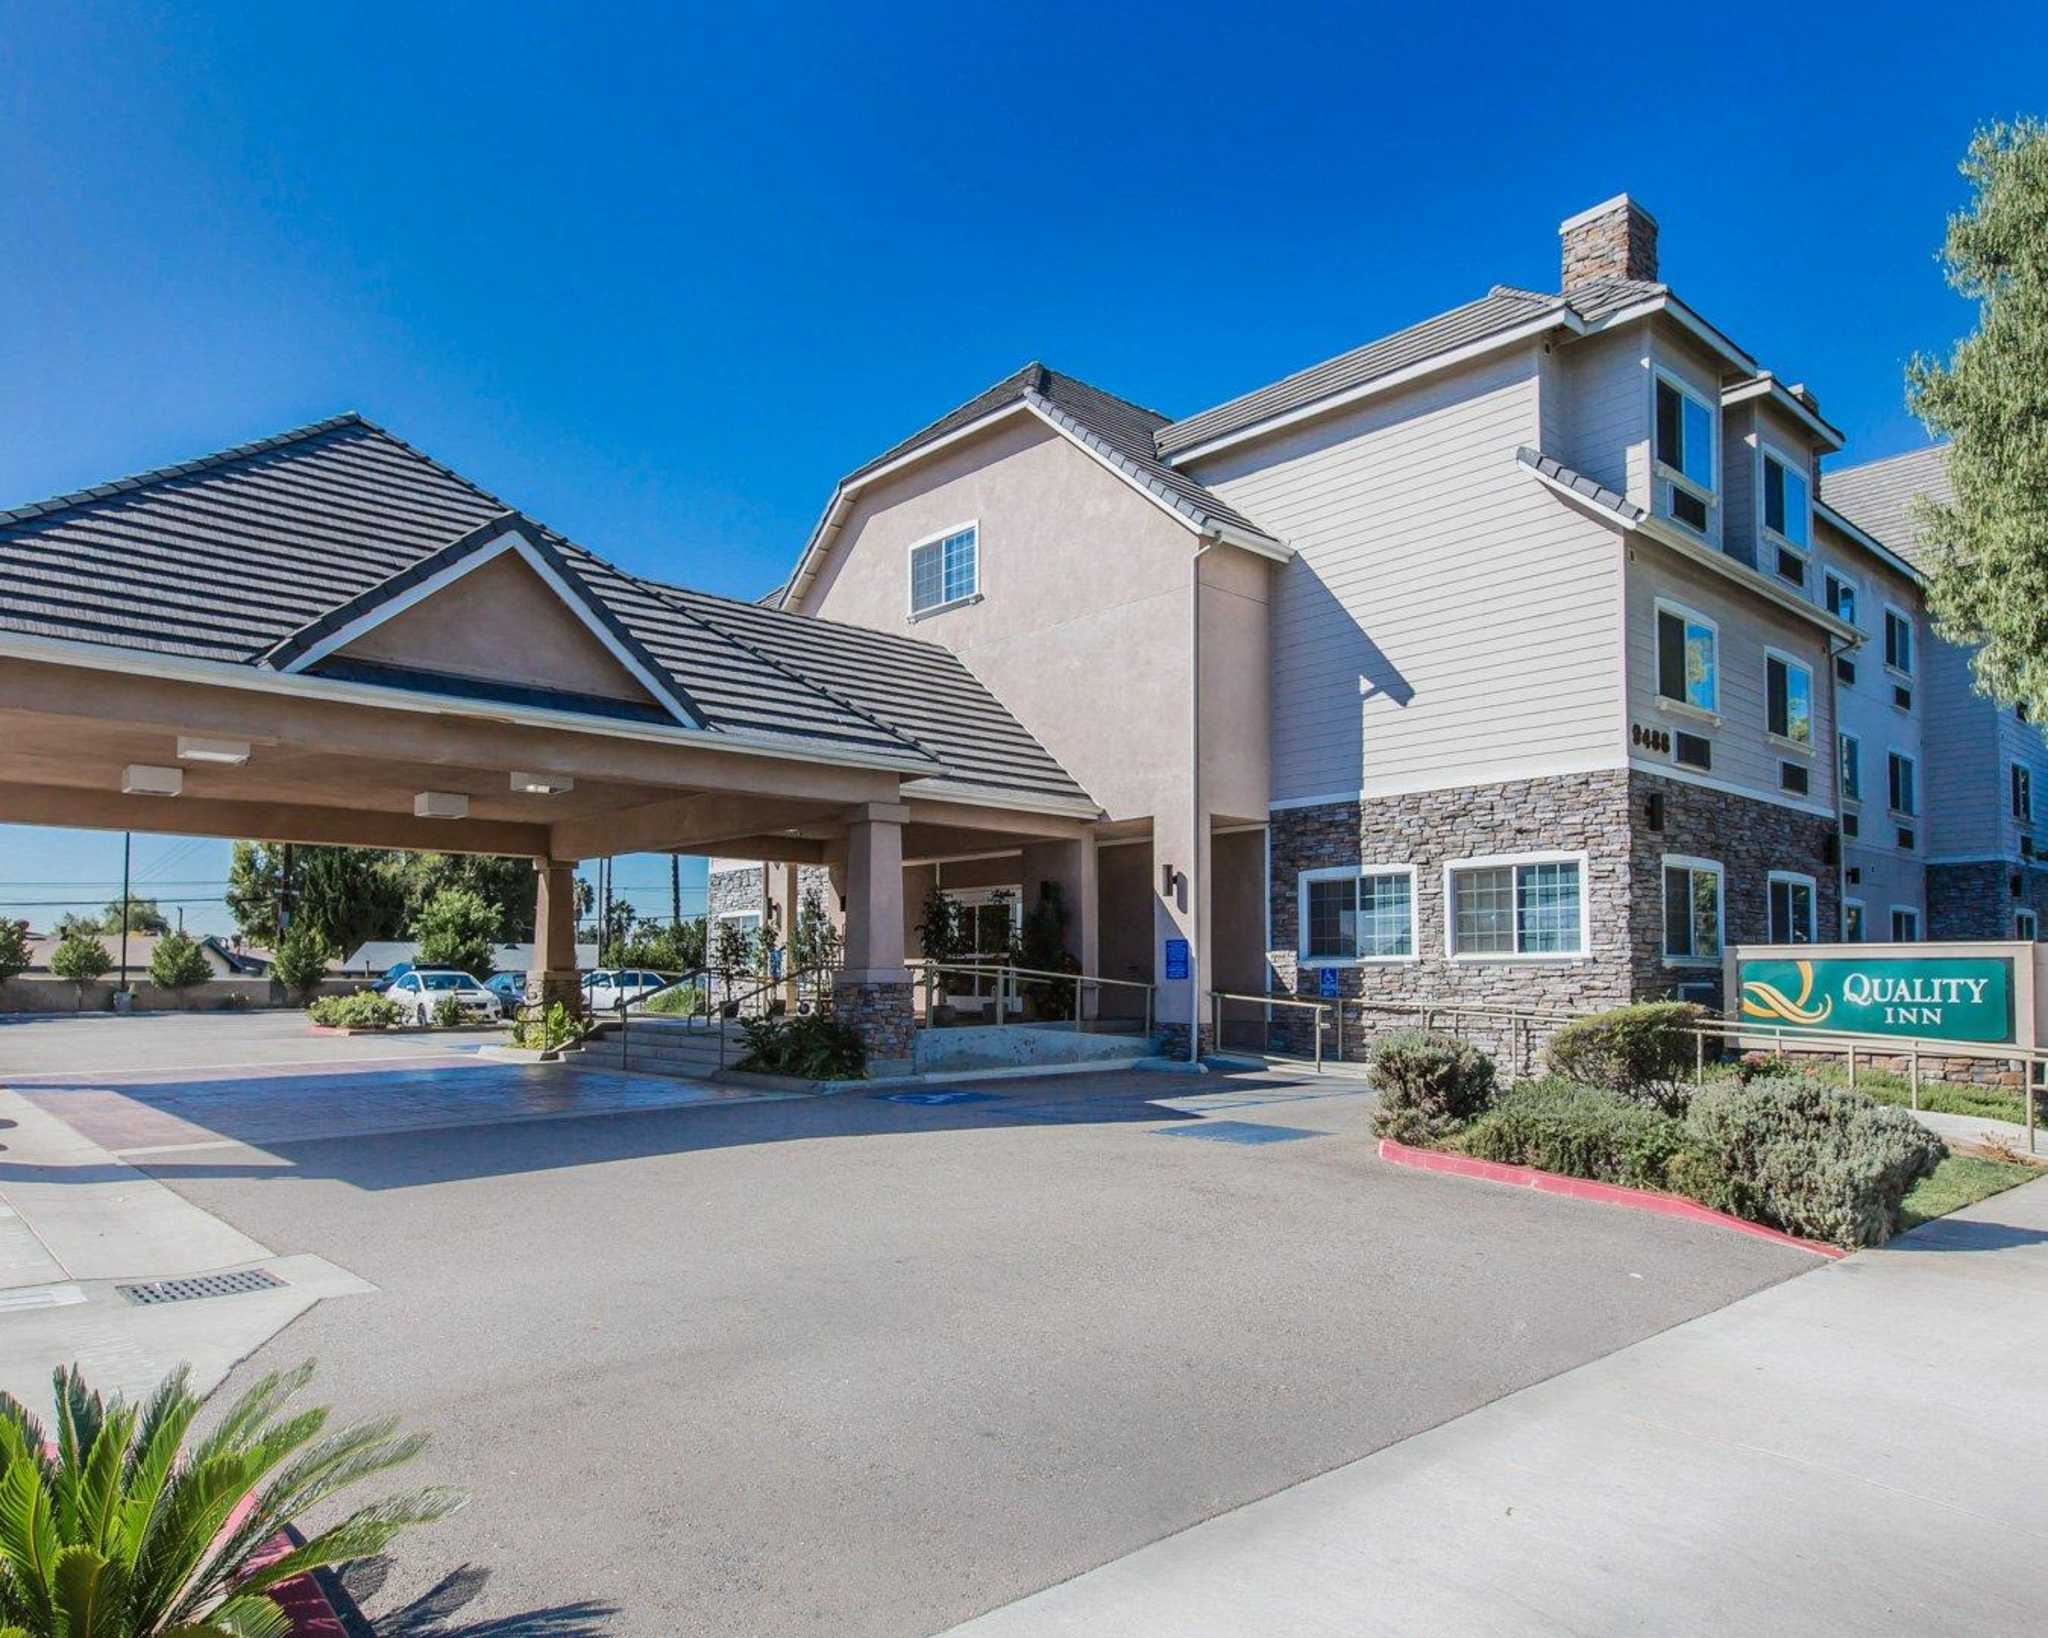 Quality Inn Rosemead-Los Angeles image 0